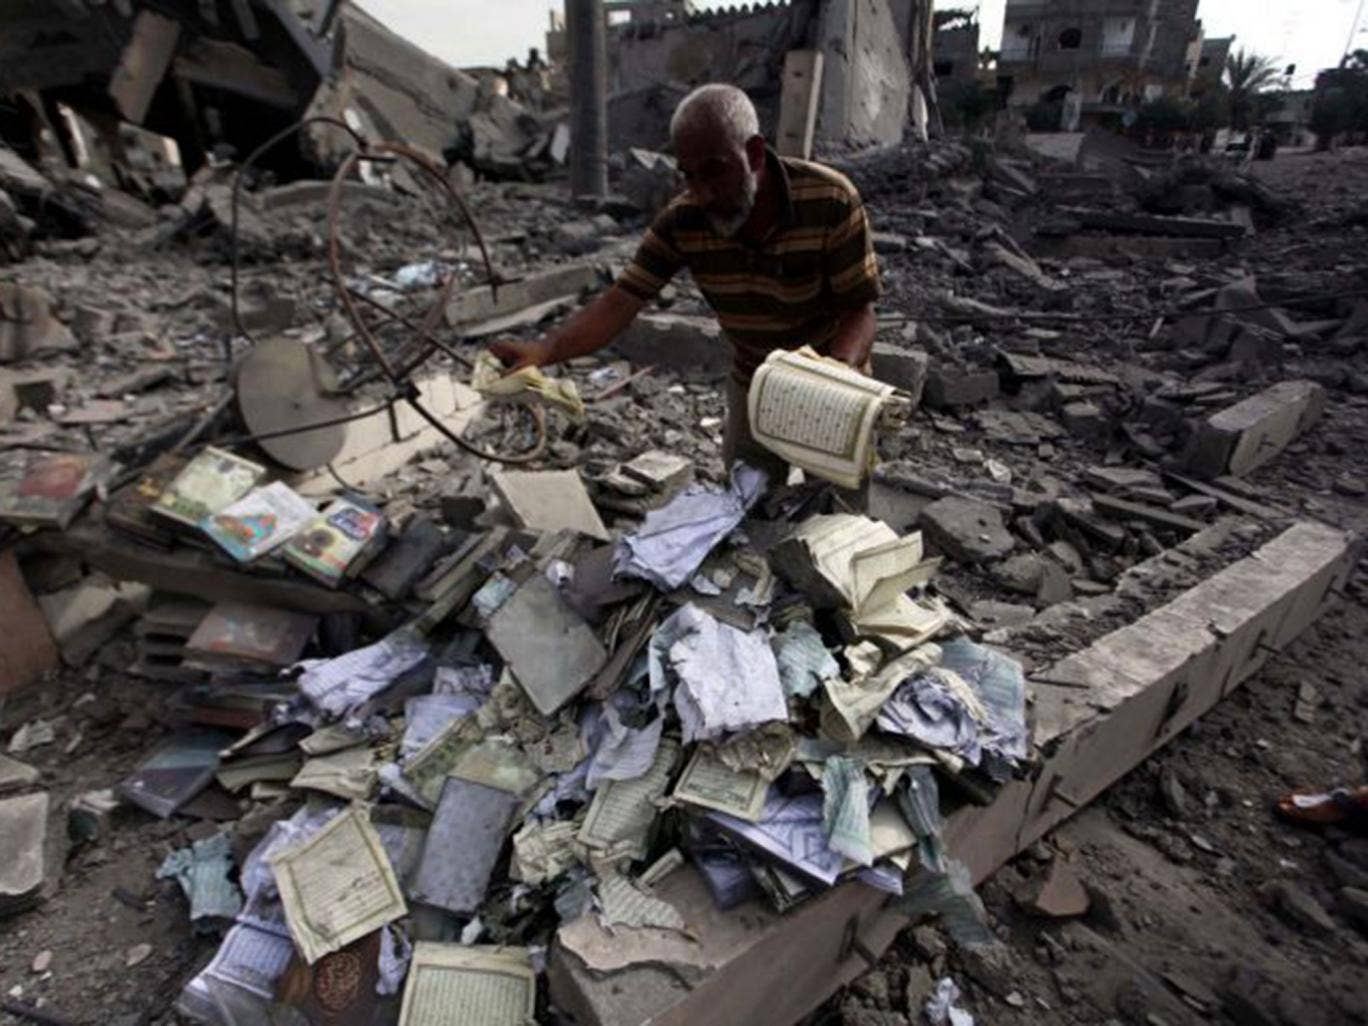 A Palestinian man collects copies of the Quran in the rubble of the Omar Ibn Abd al-Aziz mosque destroyed in an Israeli air strike in Beit Hanoun